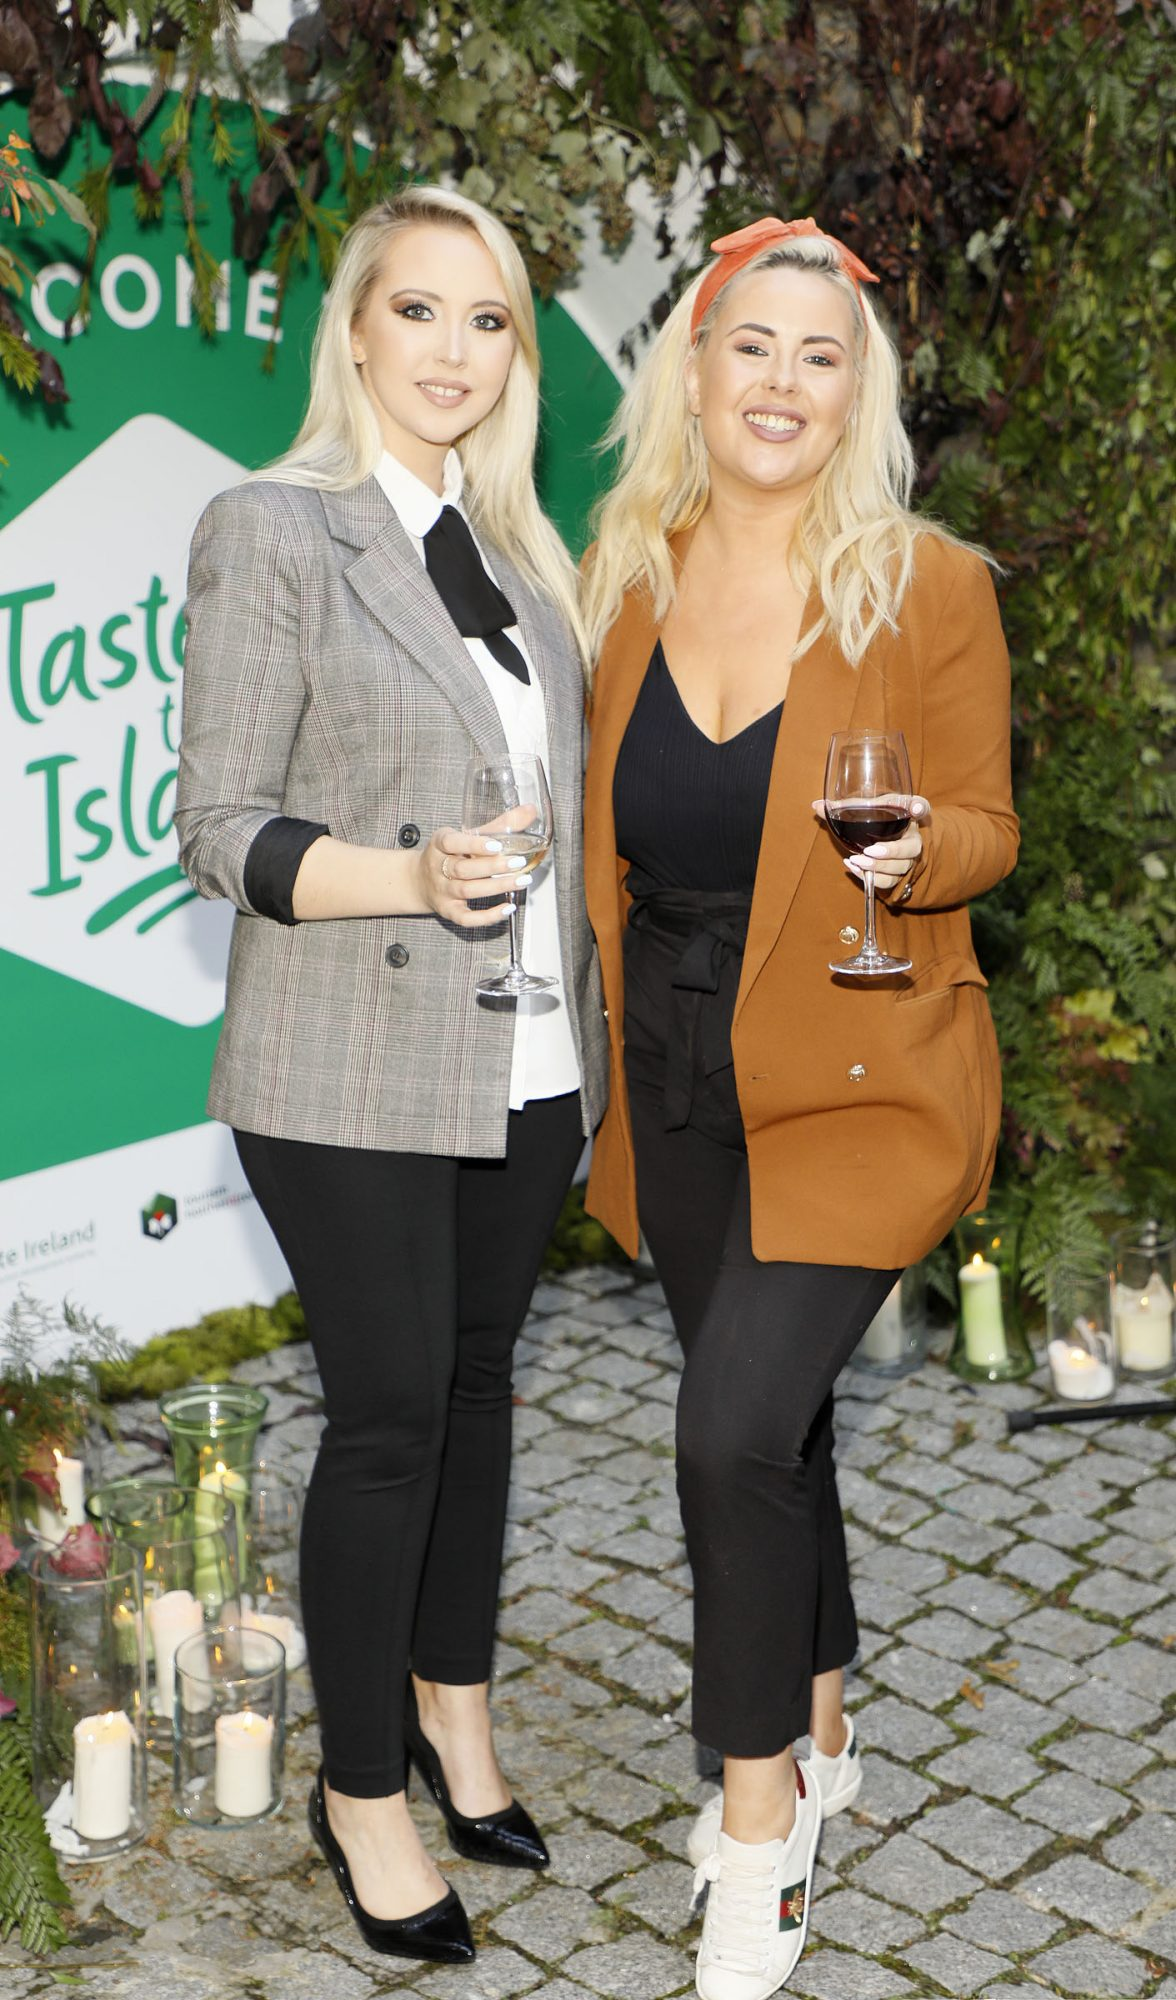 Kendra Becker and Ali Ryan at the launch of Taste the Island, a 12 week celebration of Ireland's seasonal ingredients, adventurous tastes and bold experiences taking place this September, October and November. Photo: Kieran Harnett